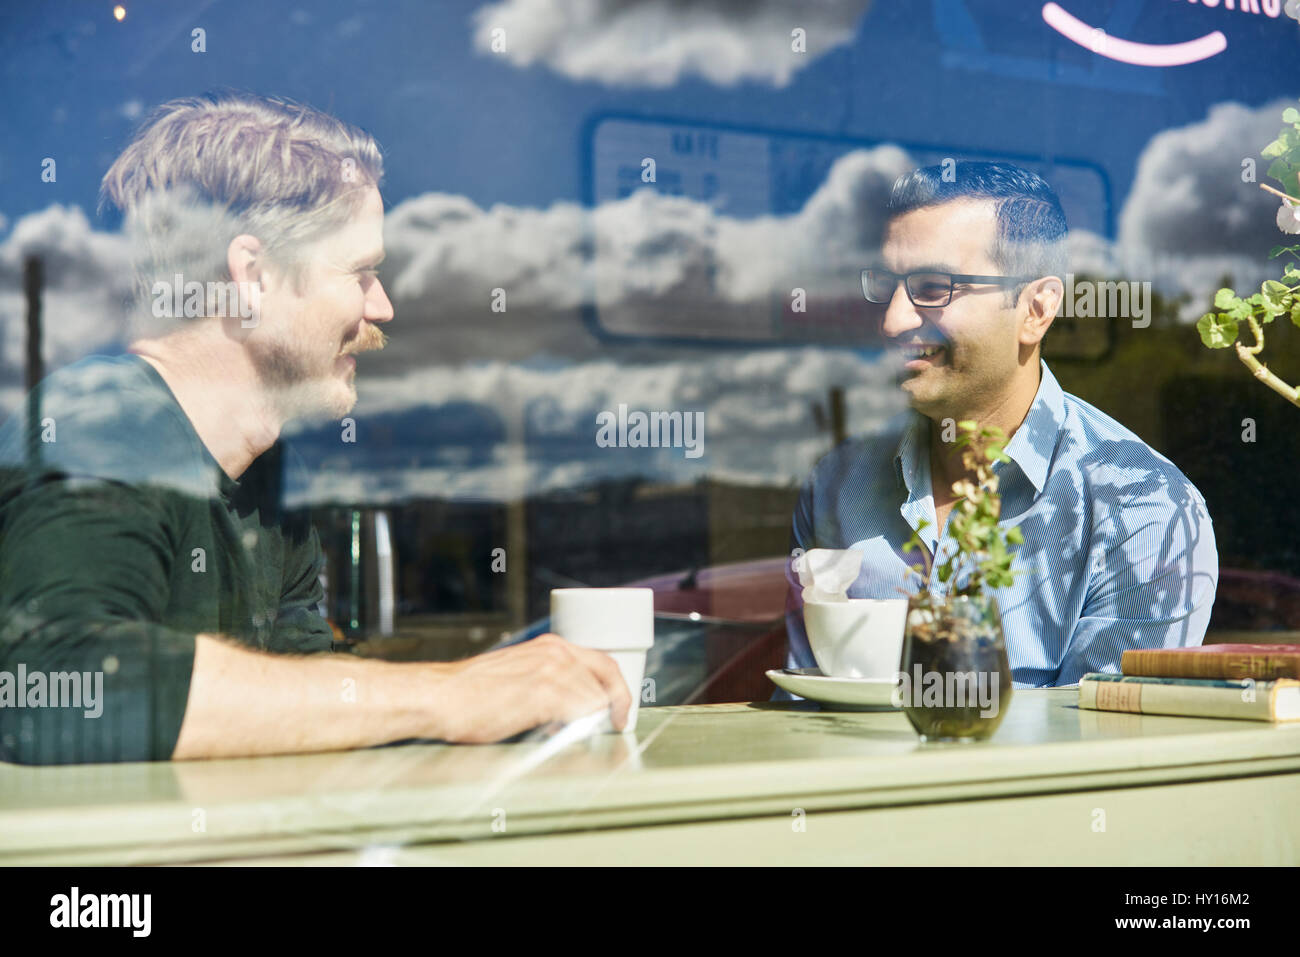 Sweden, Portrait of two mid adult men in cafe Stock Photo